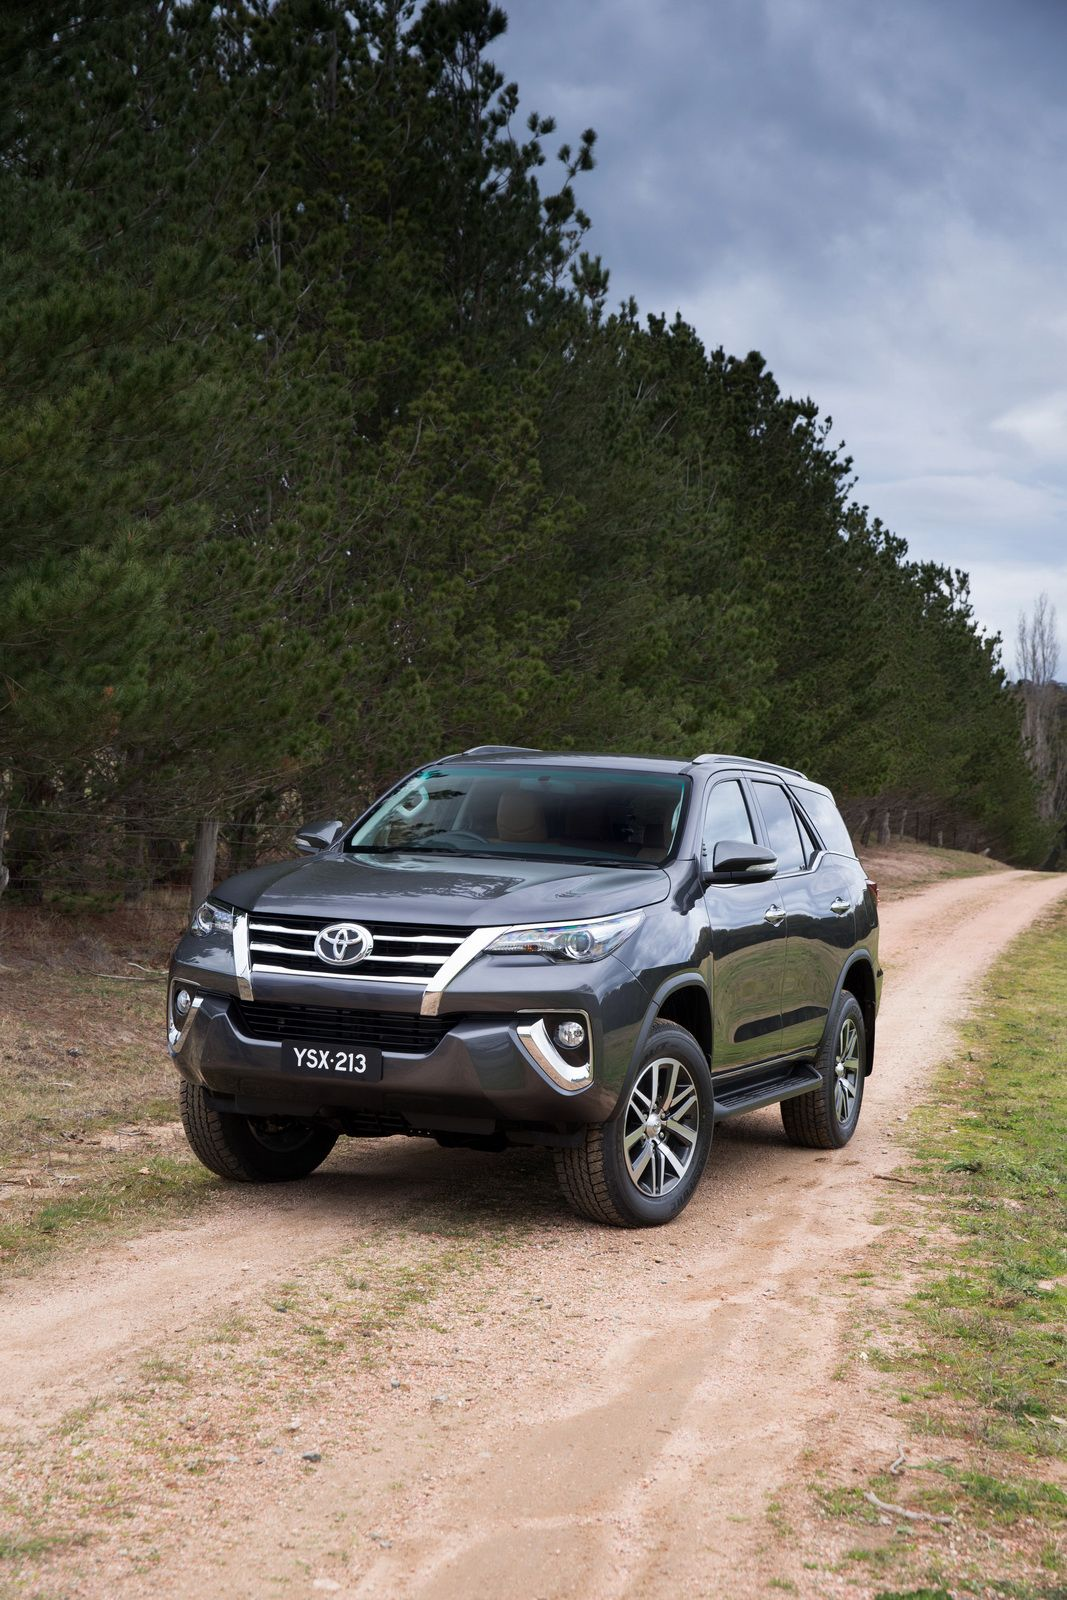 2016 Toyota Fortuner This Is Finally It W Video Toyota Car Models Toyota Suv Suv Models